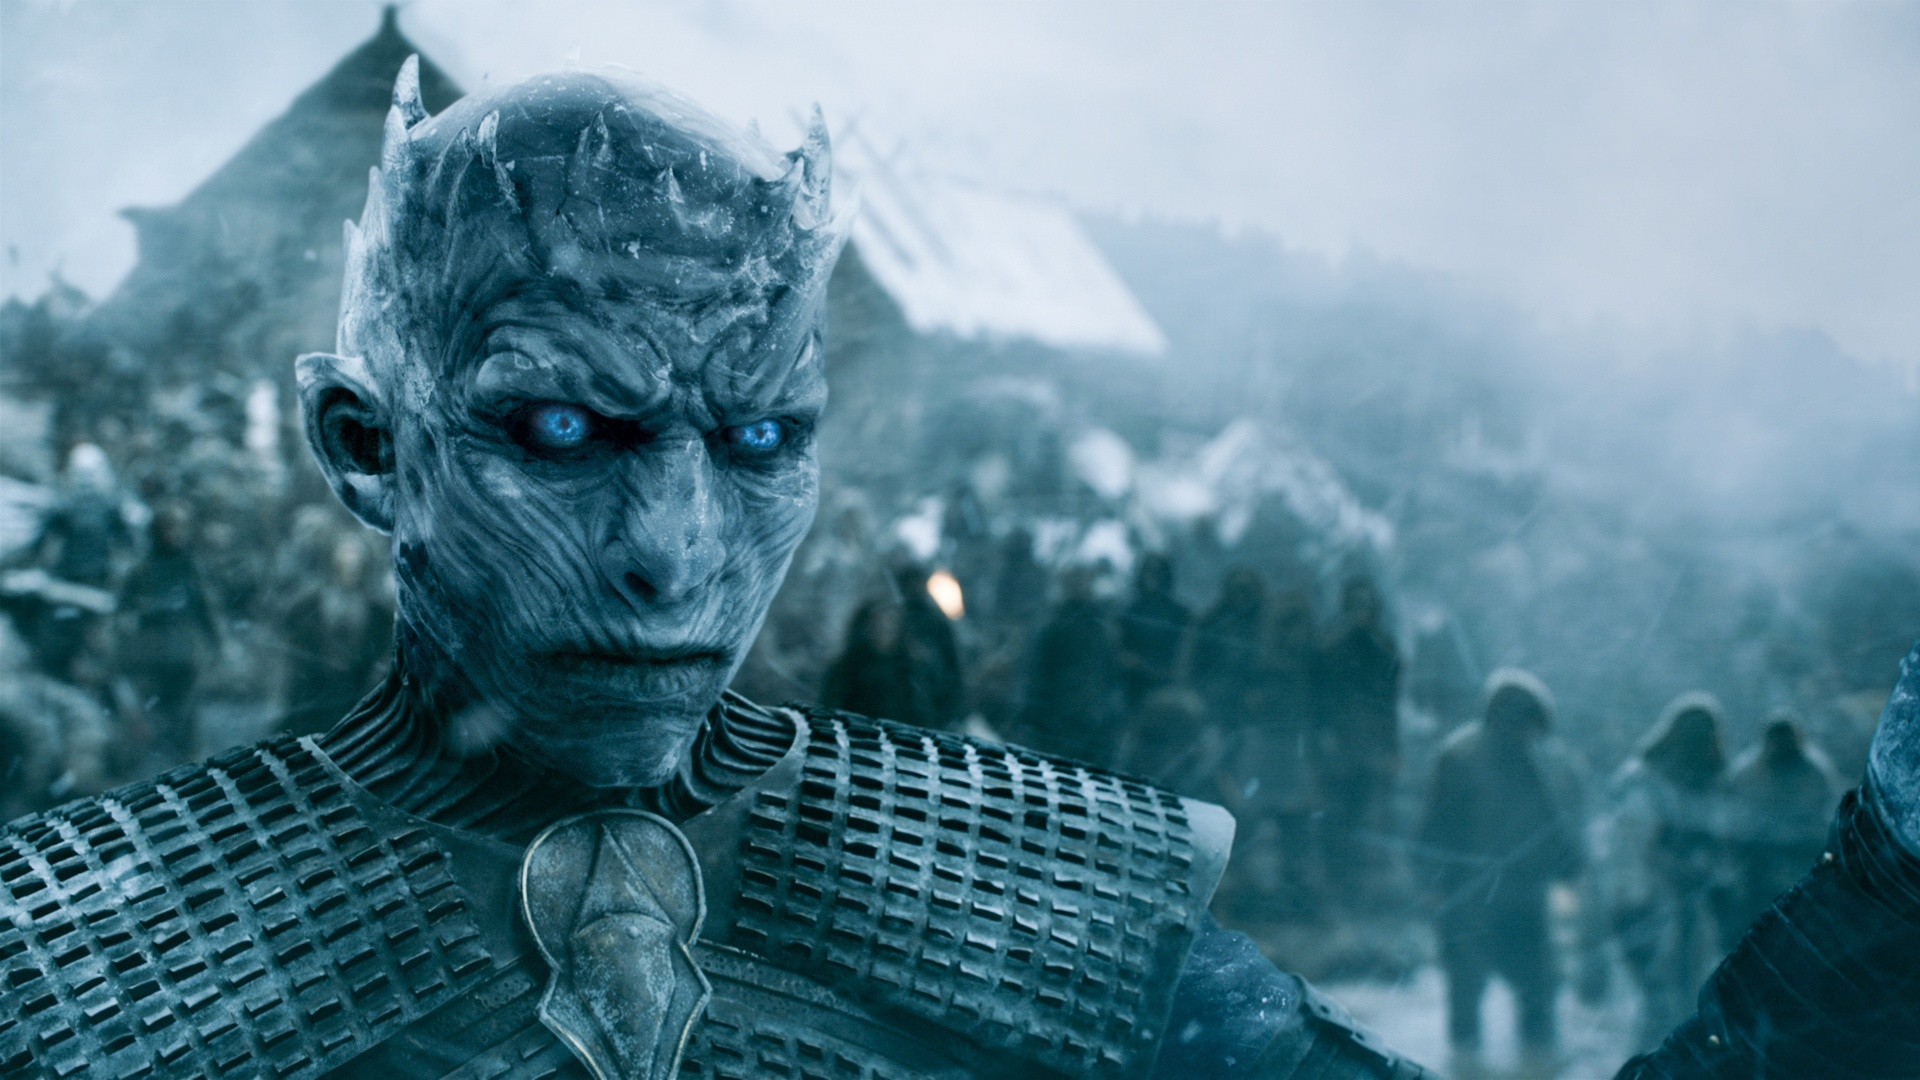 game of thrones 508 hardhome images 2015 1920×1080-001